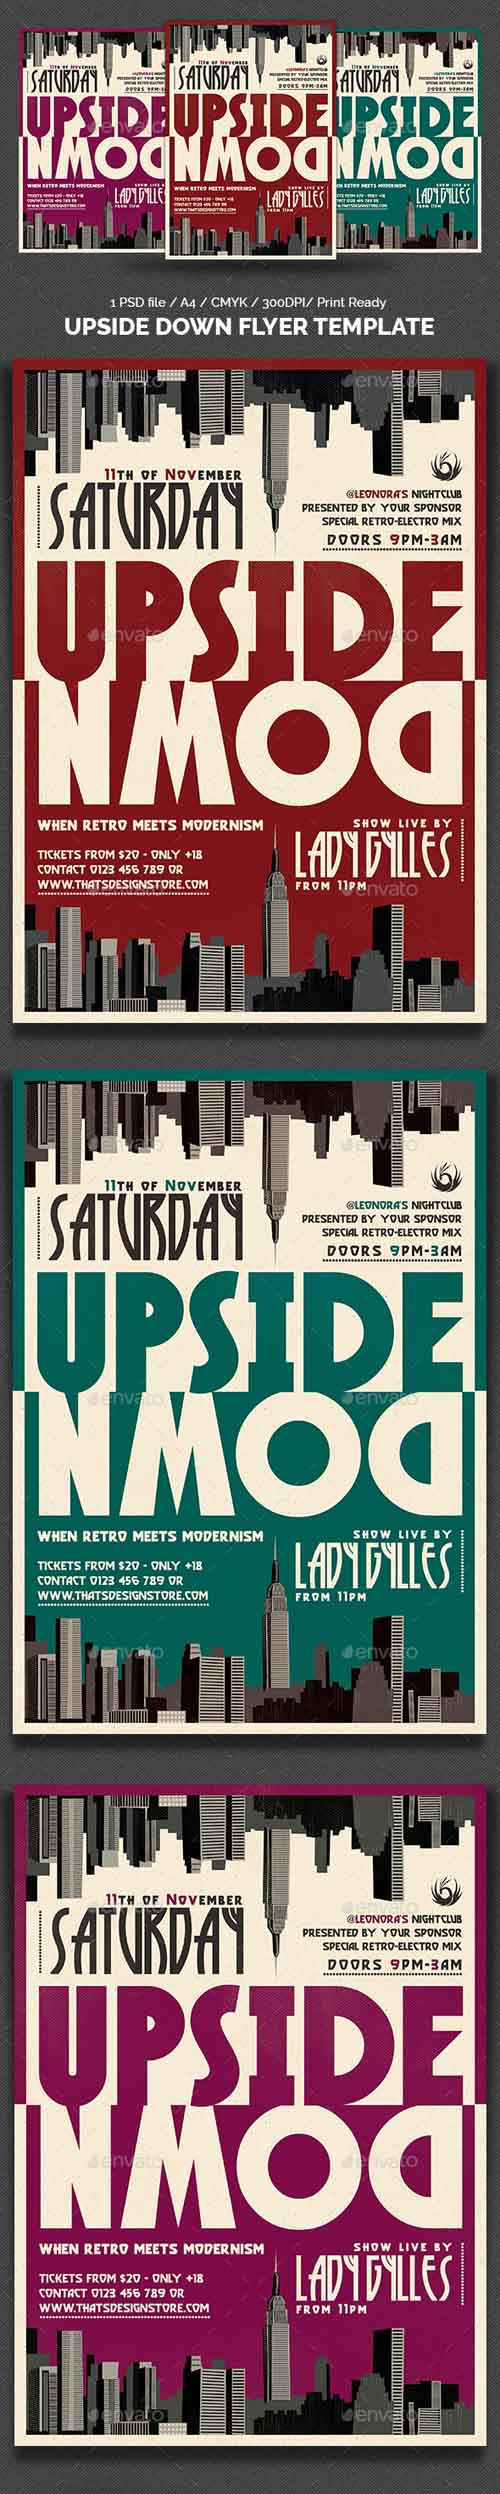 Upside Down Flyer Template 14327044